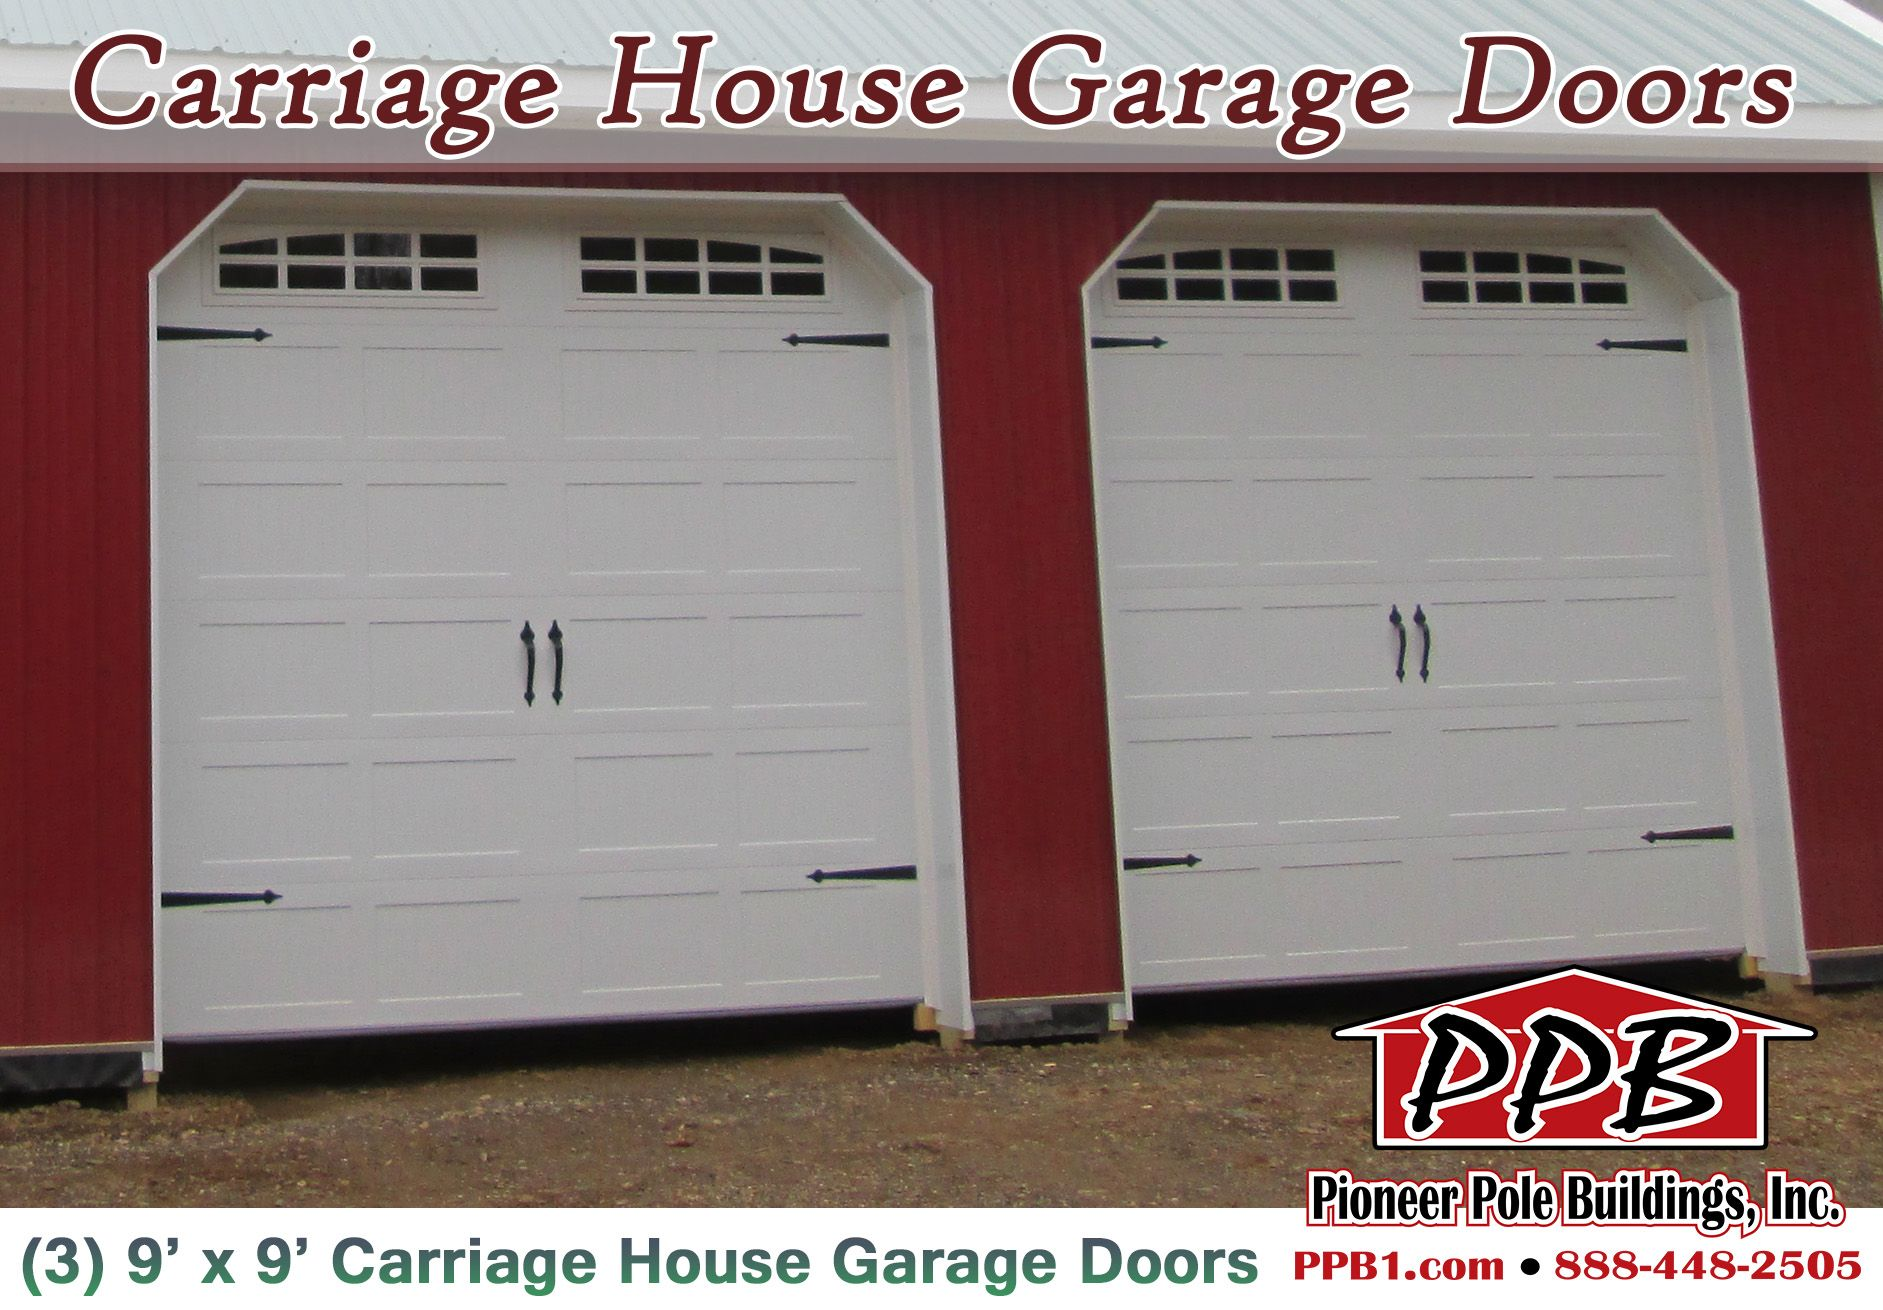 Get Yourself Some Carriage House Garage Doors More Info Http Pioneerpolebuildings Com Portfolio Project 24 W X 36 Garage Design Pole Buildings Garage Shed